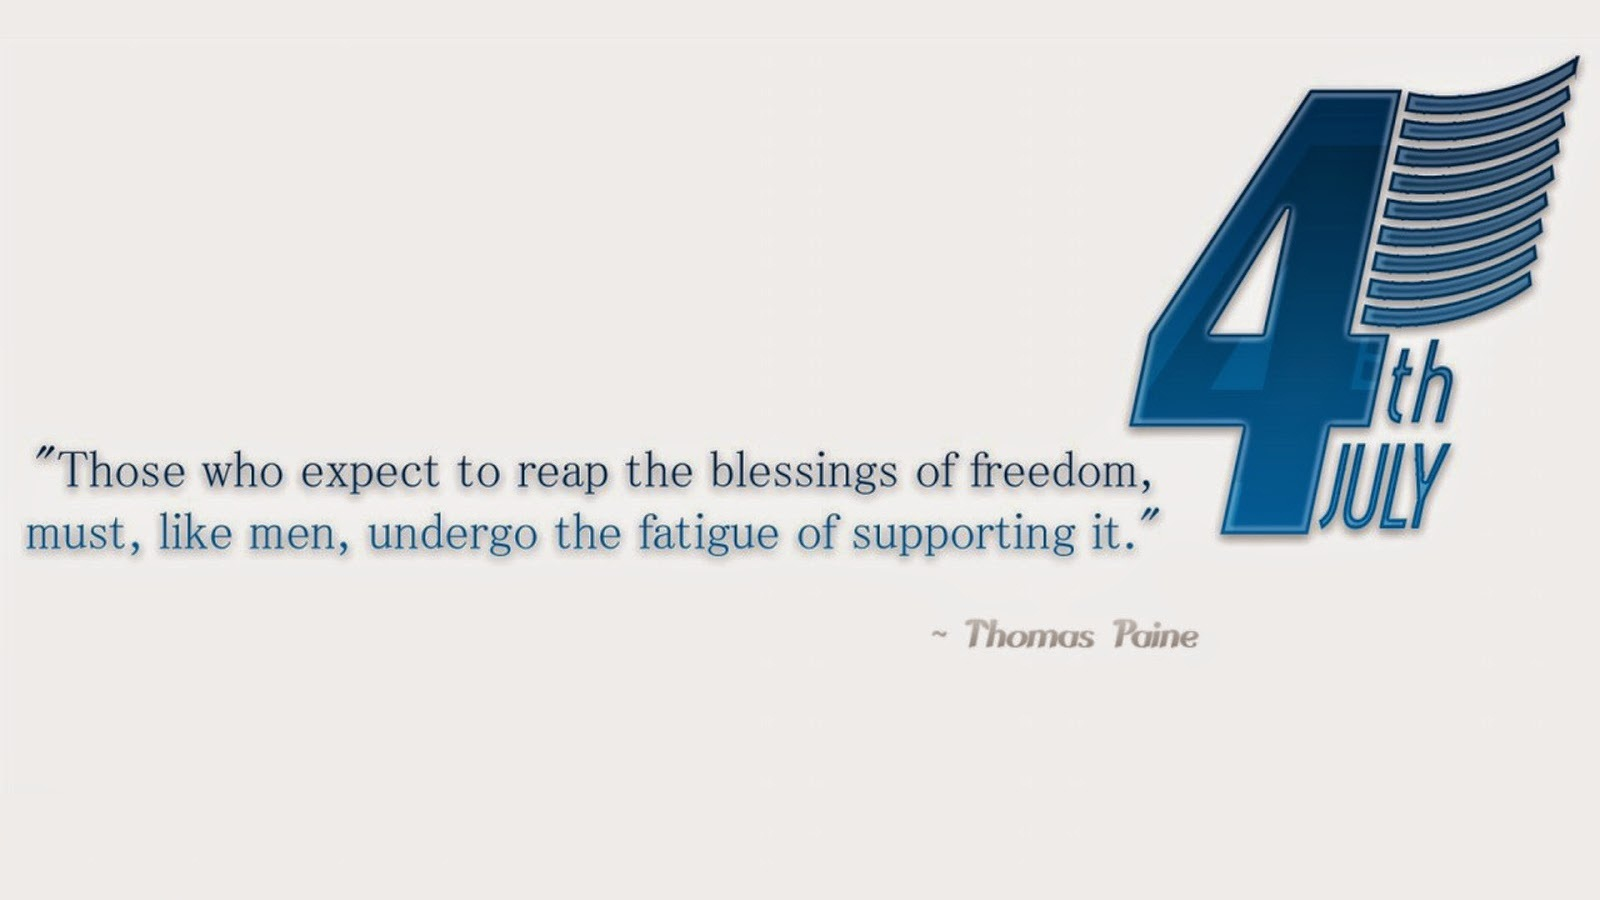 4th July Blessing Quotes By Thomos Poine Image